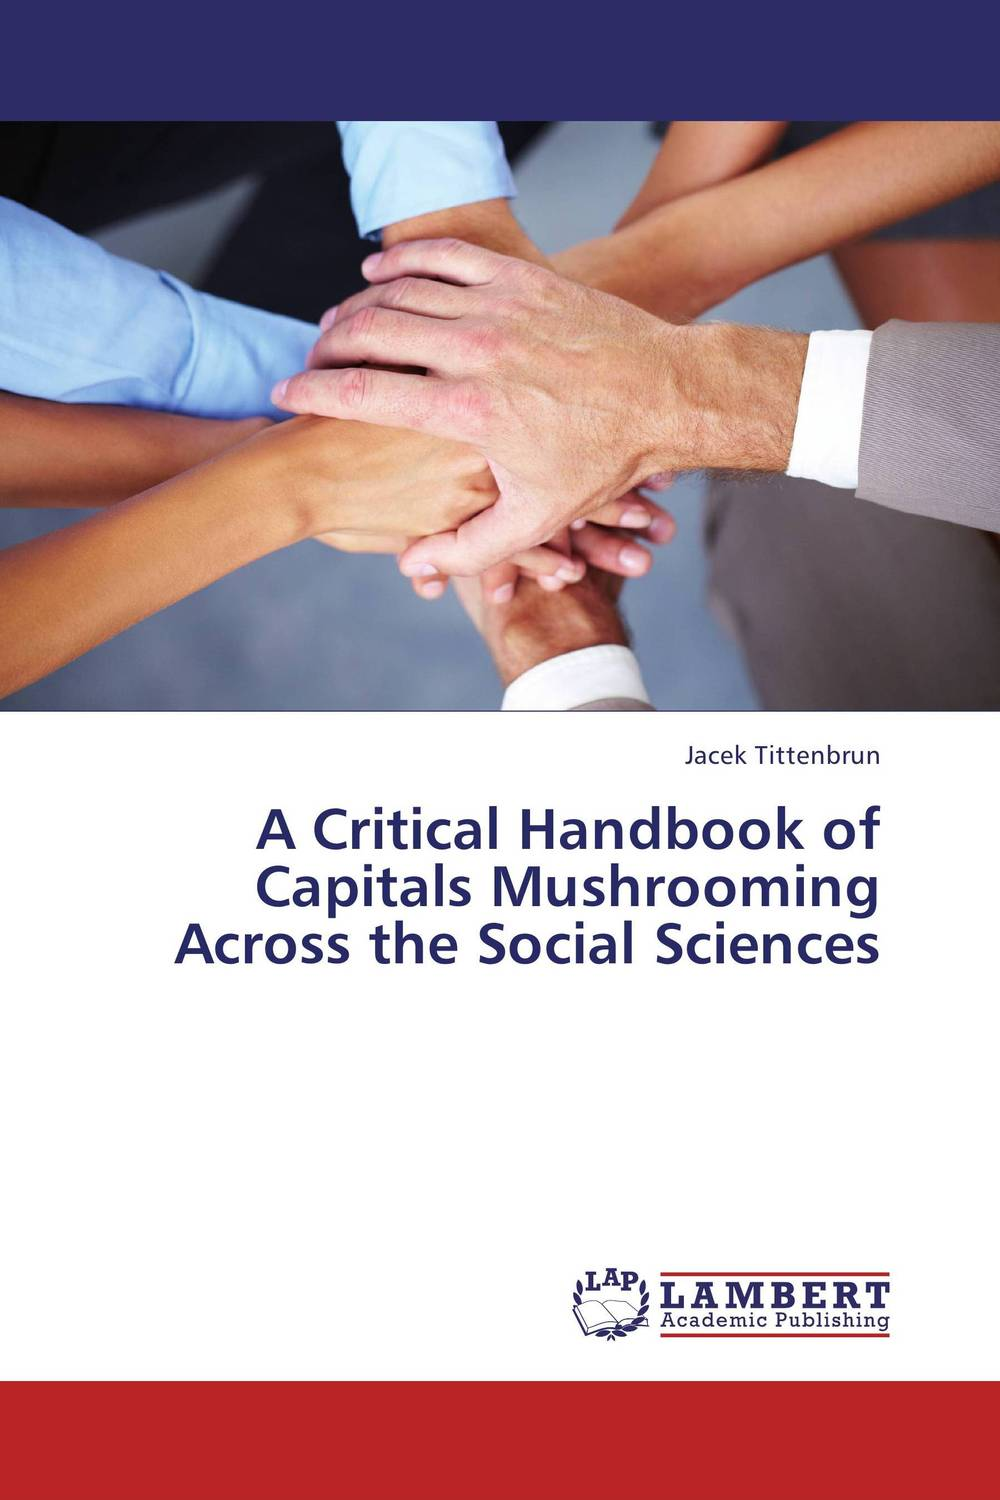 A Critical Handbook of Capitals Mushrooming Across the Social Sciences the history of the social sciences since 1945